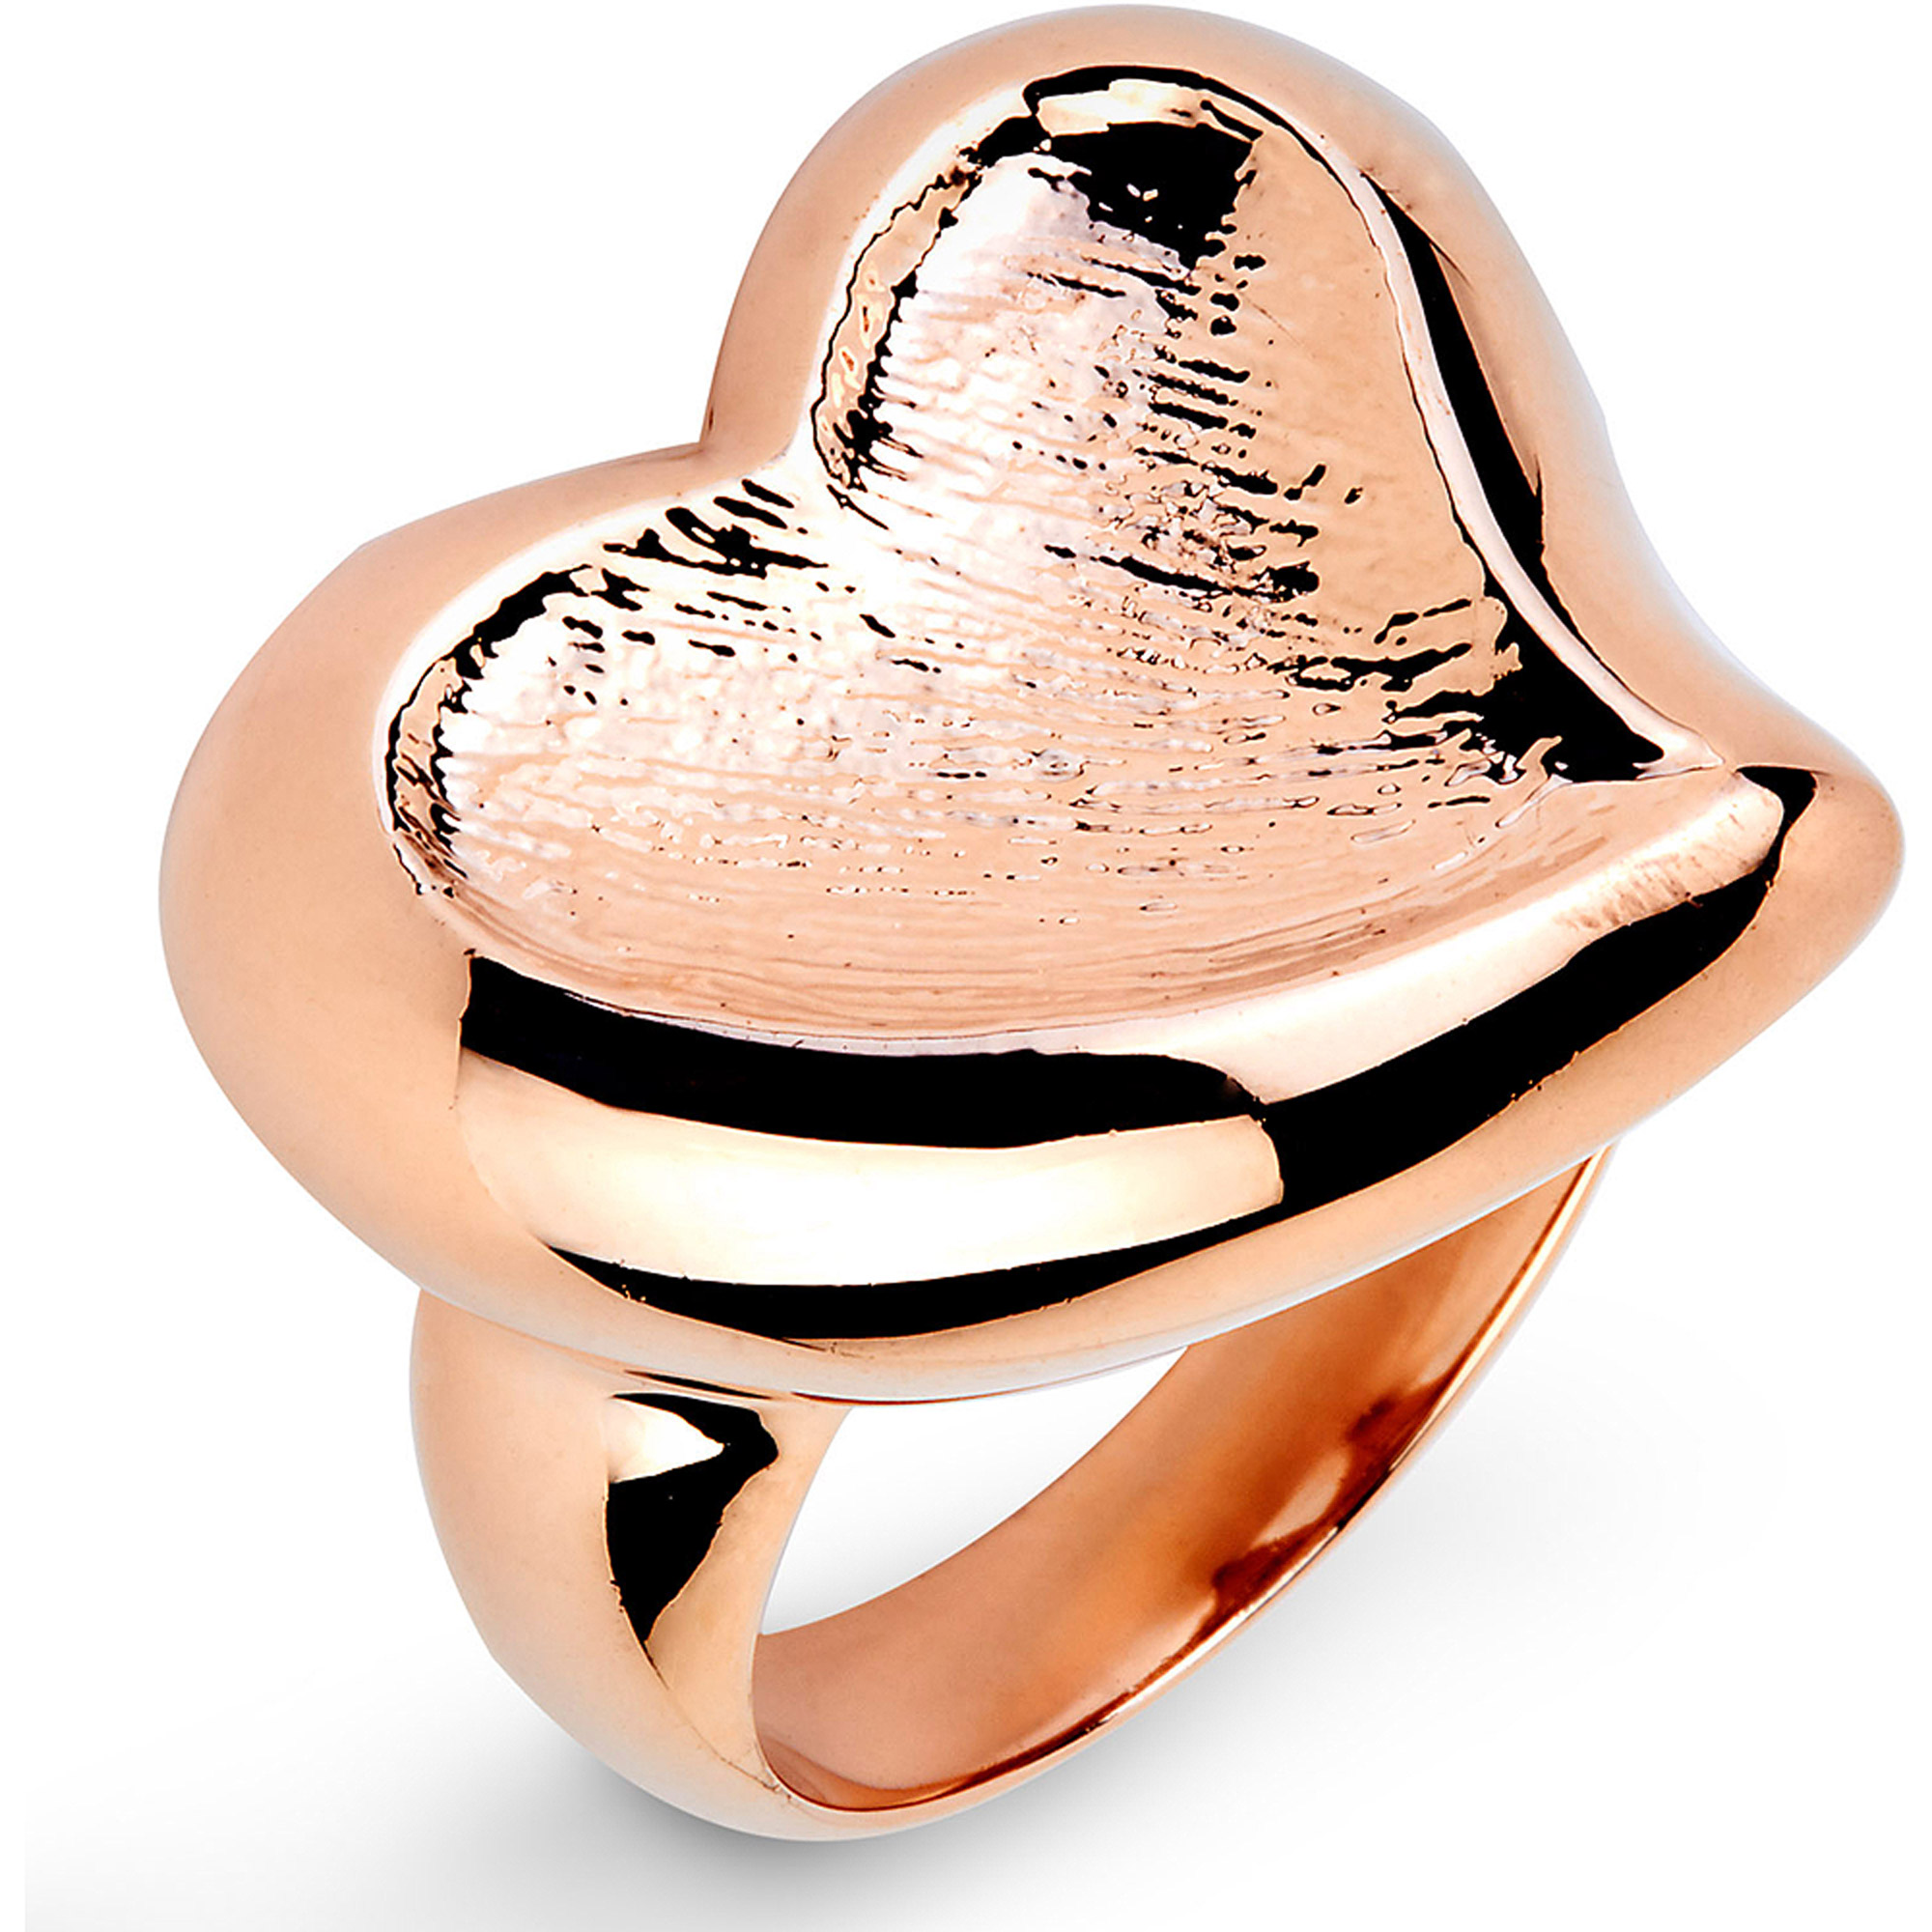 Rose Gold-Plated Stainless Steel Heart-Shaped Freeform Ring